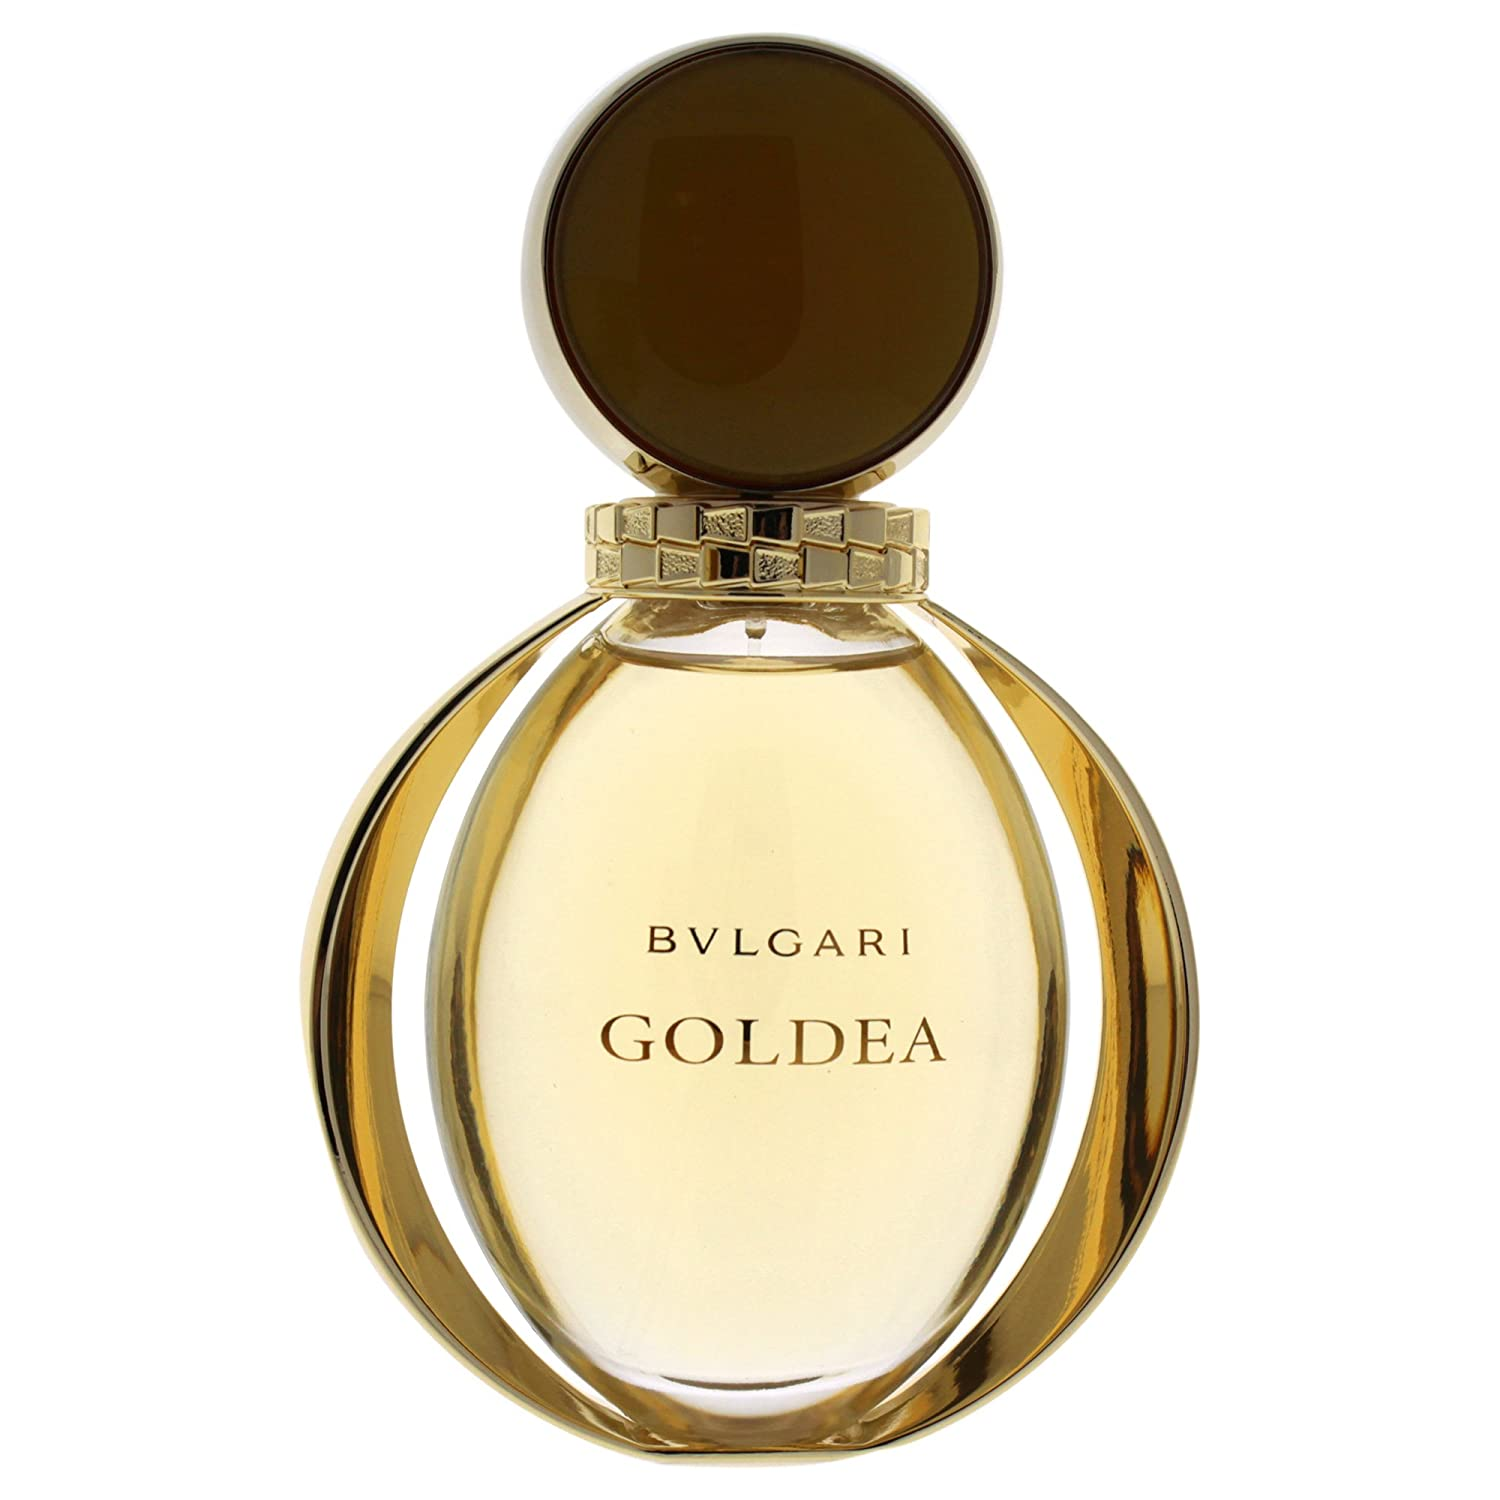 Bvlgari Goldea Parfum Spray 50 ml  Amazon.fr  Beauté et Parfum 61d11aa66da